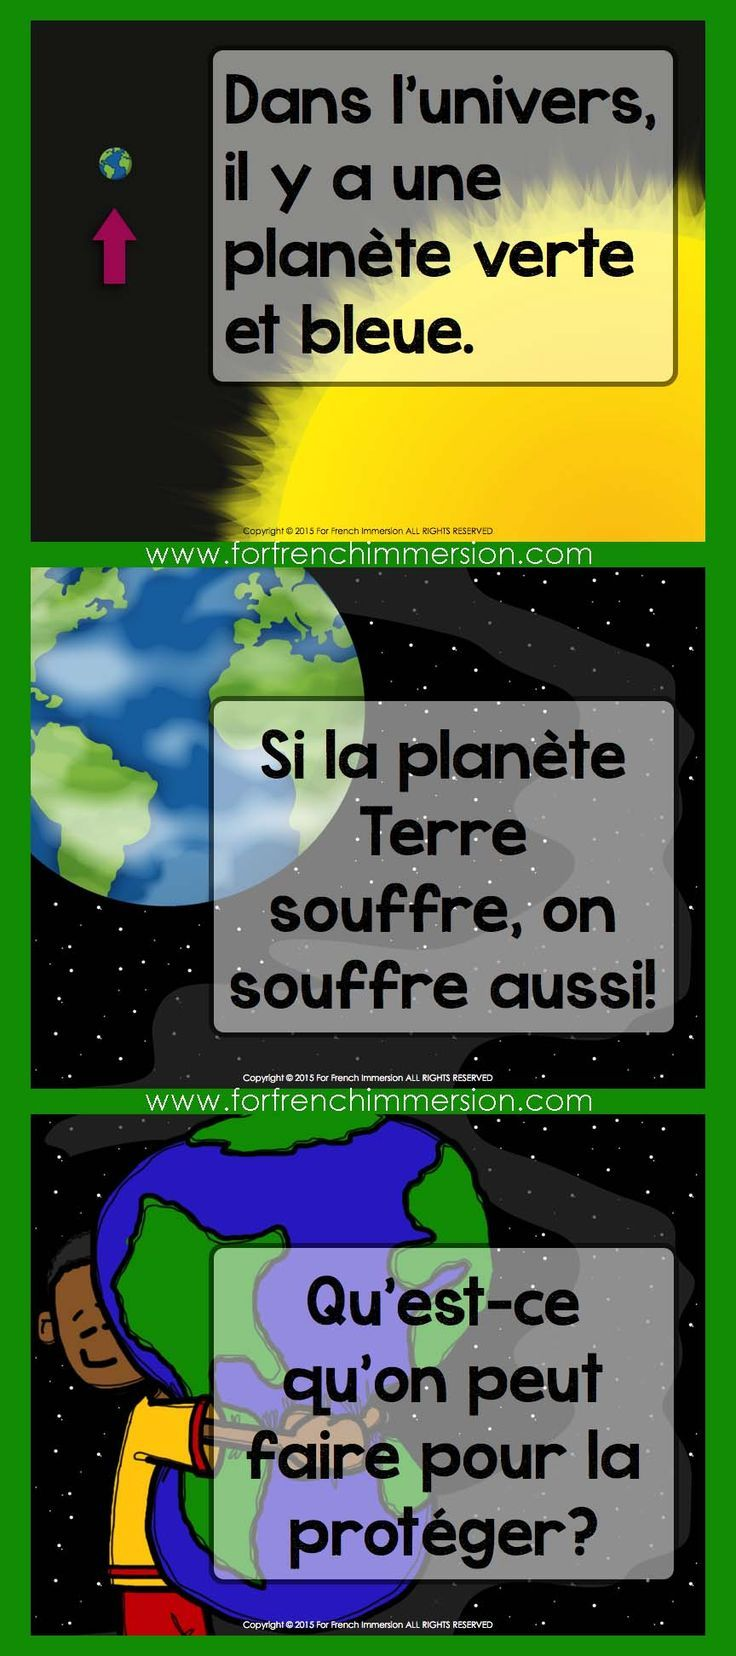 Jour de la Terre en français - Earth Day Slideshare Discussion Prompt in French